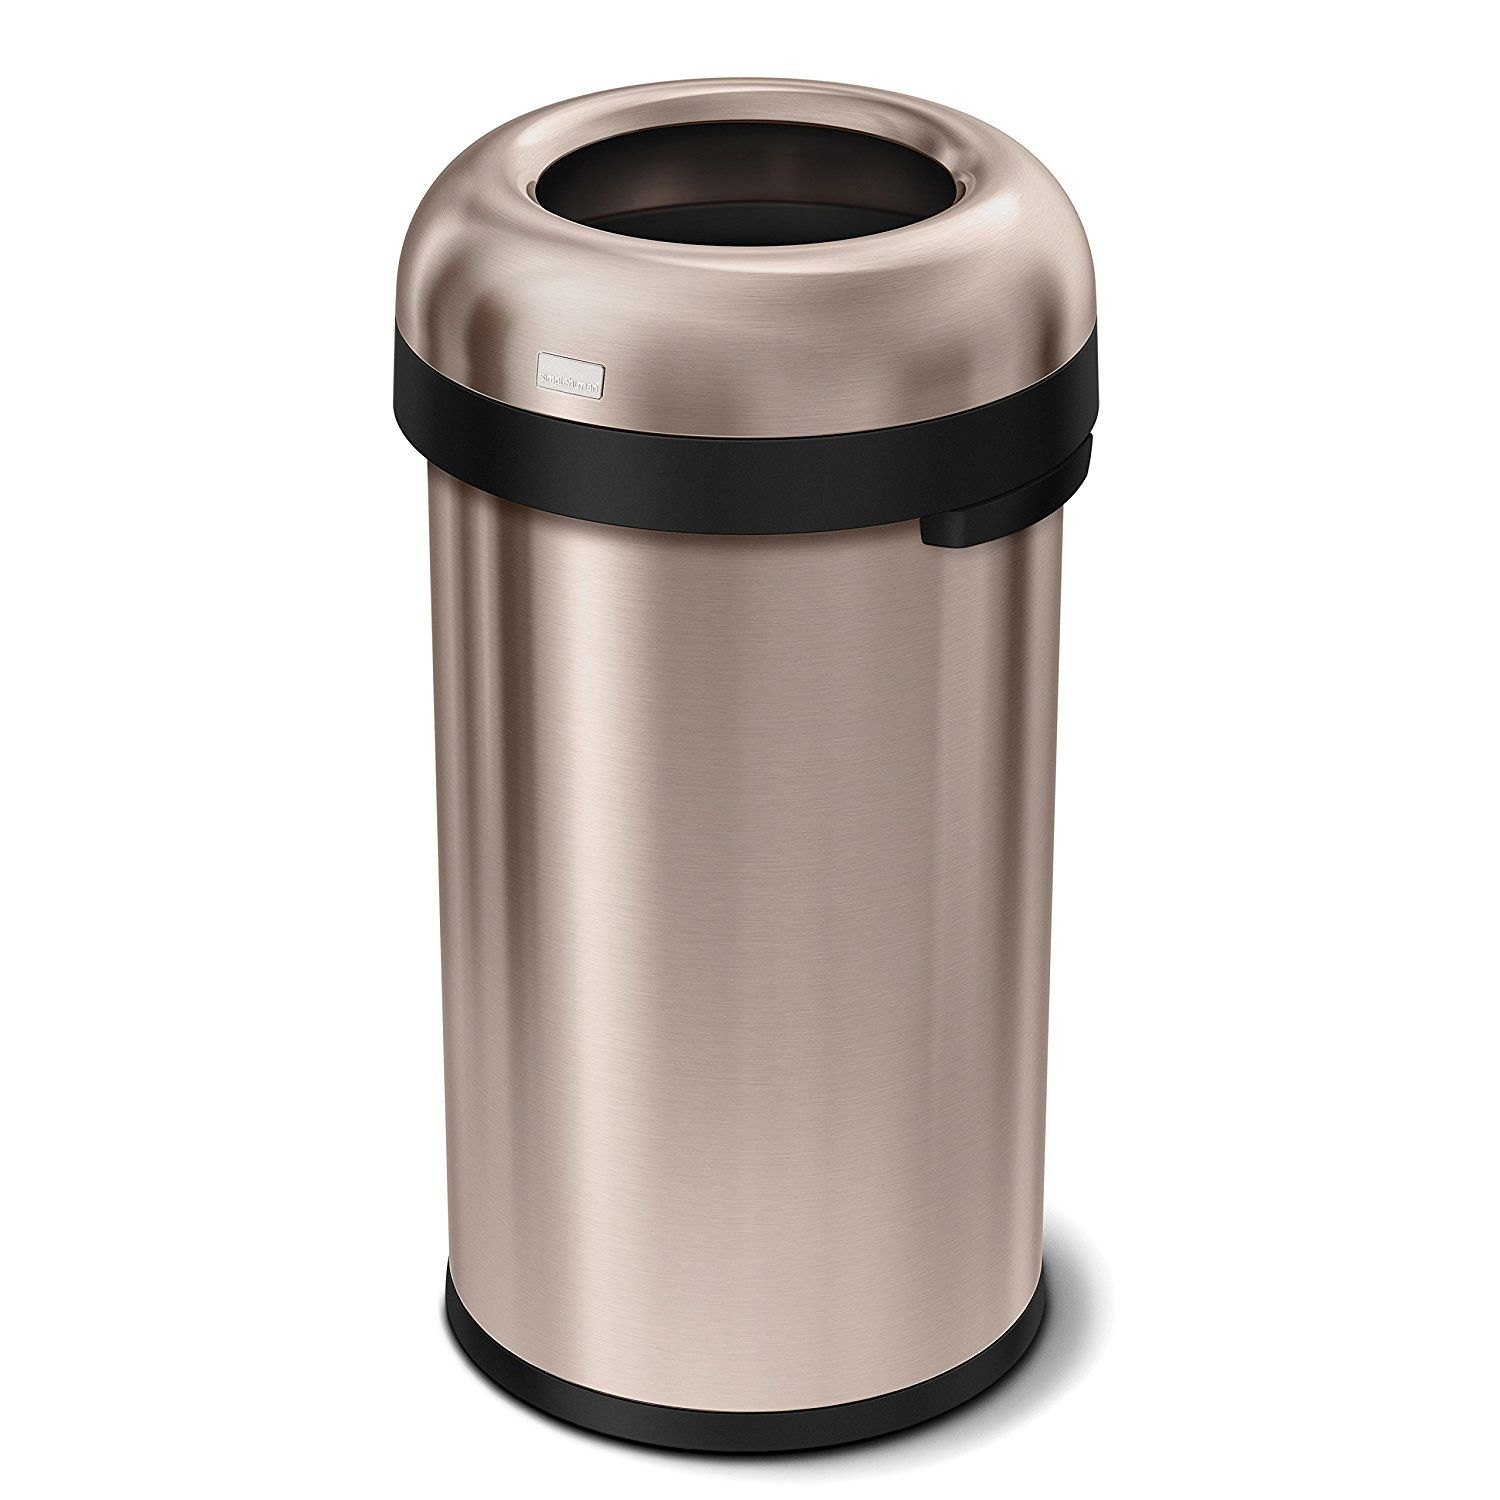 Top 5: Best Tall Kitchen Trash Cans Review In 2017 For The Above Average  Cook Each Kitchen Needs A Proper Trash Can To Dispose Of Waste, Swept Up  Dust Or ...